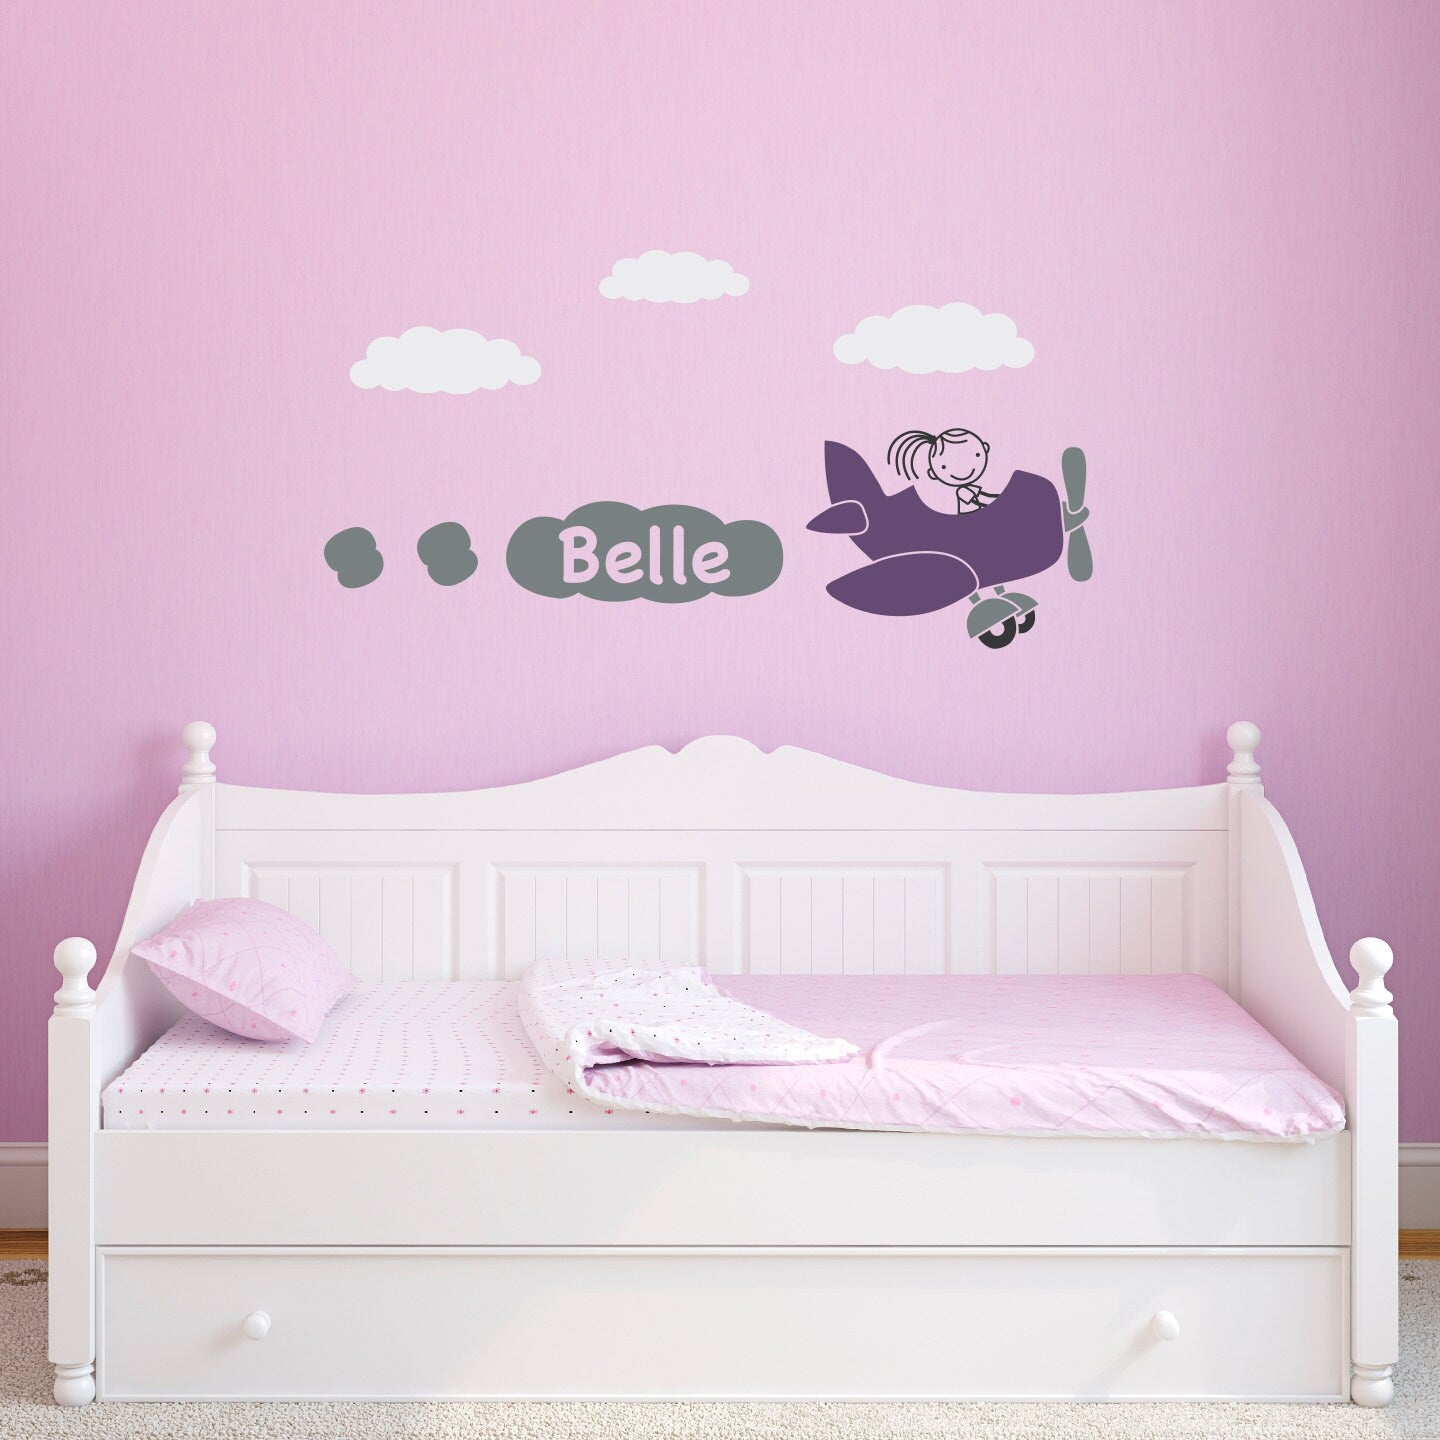 Airplane Wall Decal With Girls Personalized Name Plane Wall Sticker Stephen Edward Graphics